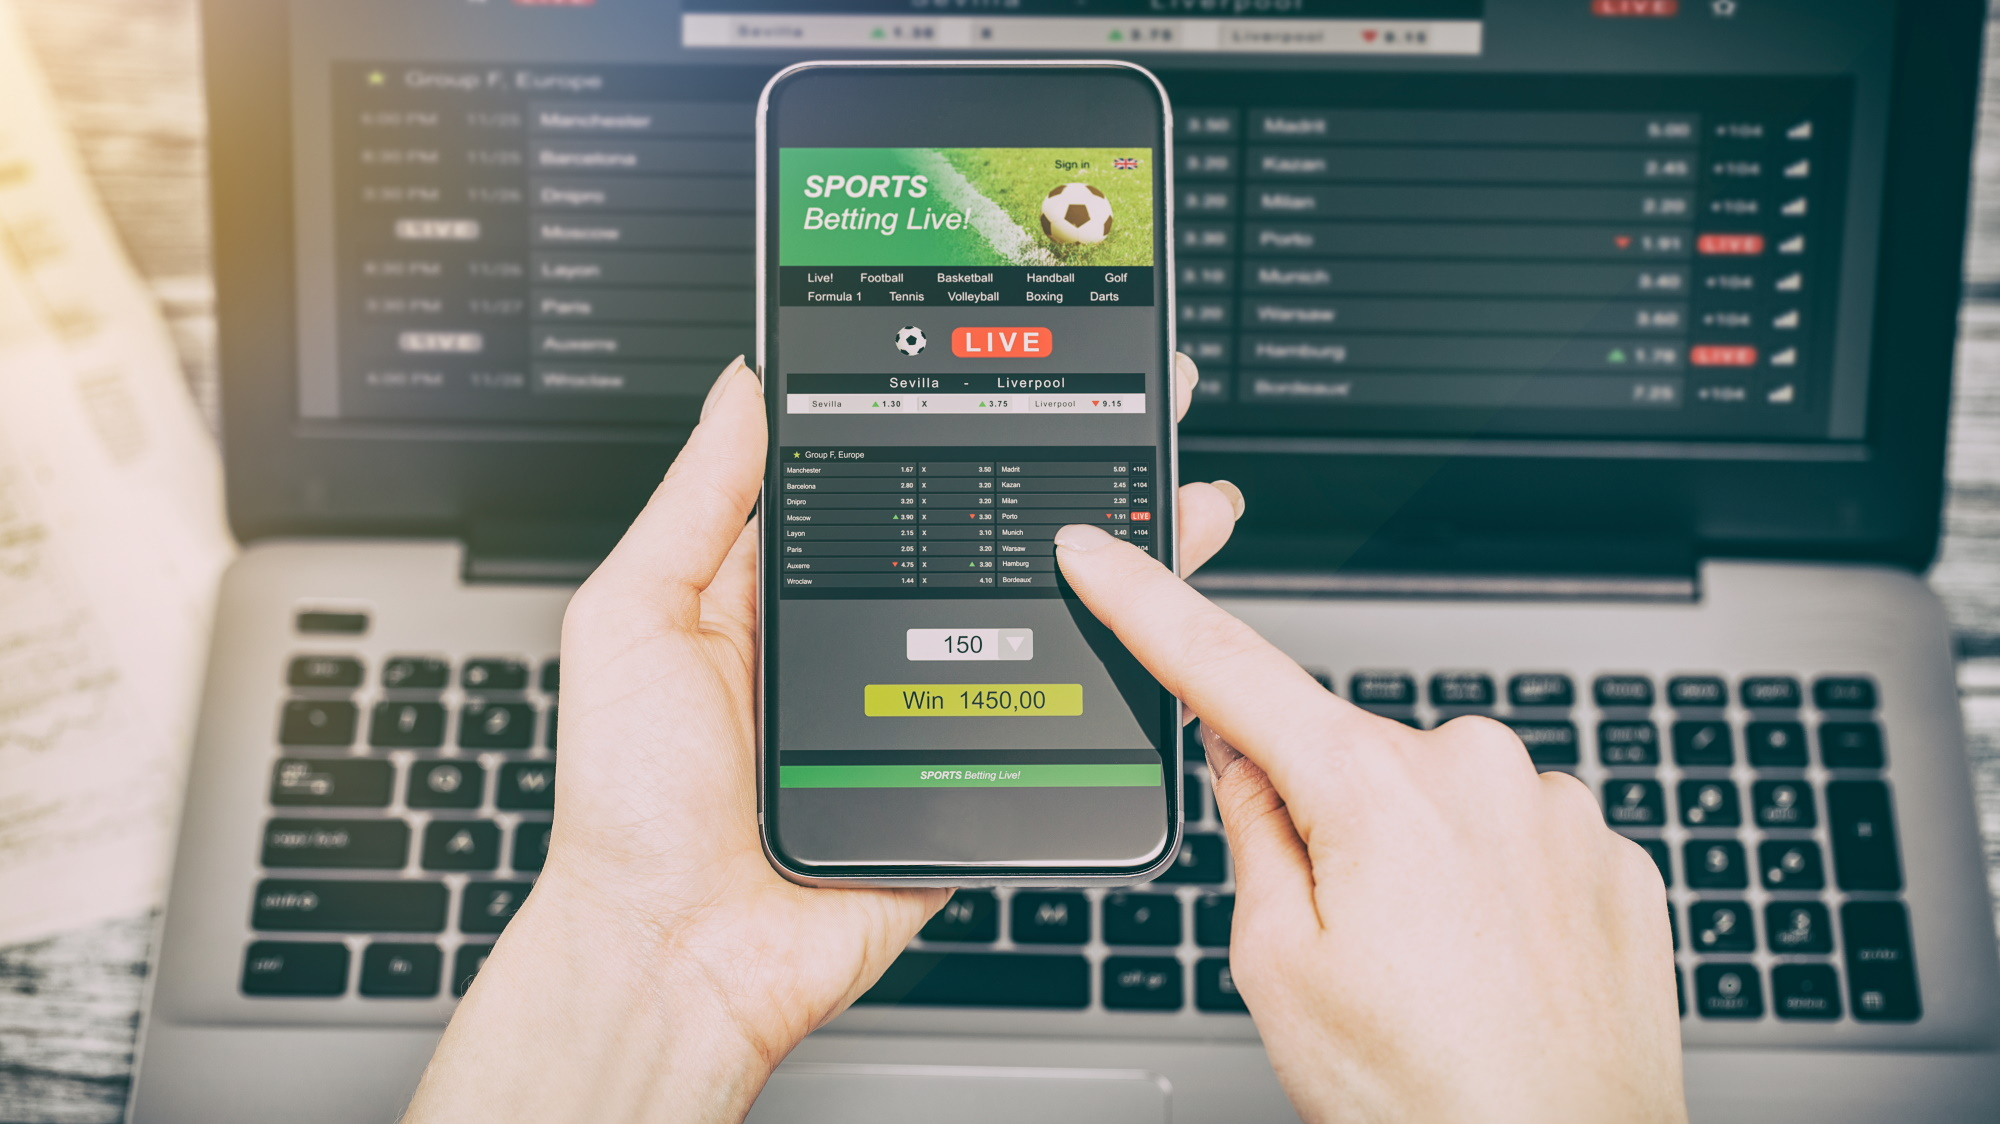 Online sports betting: is it legal and how does it work? | TechRadar